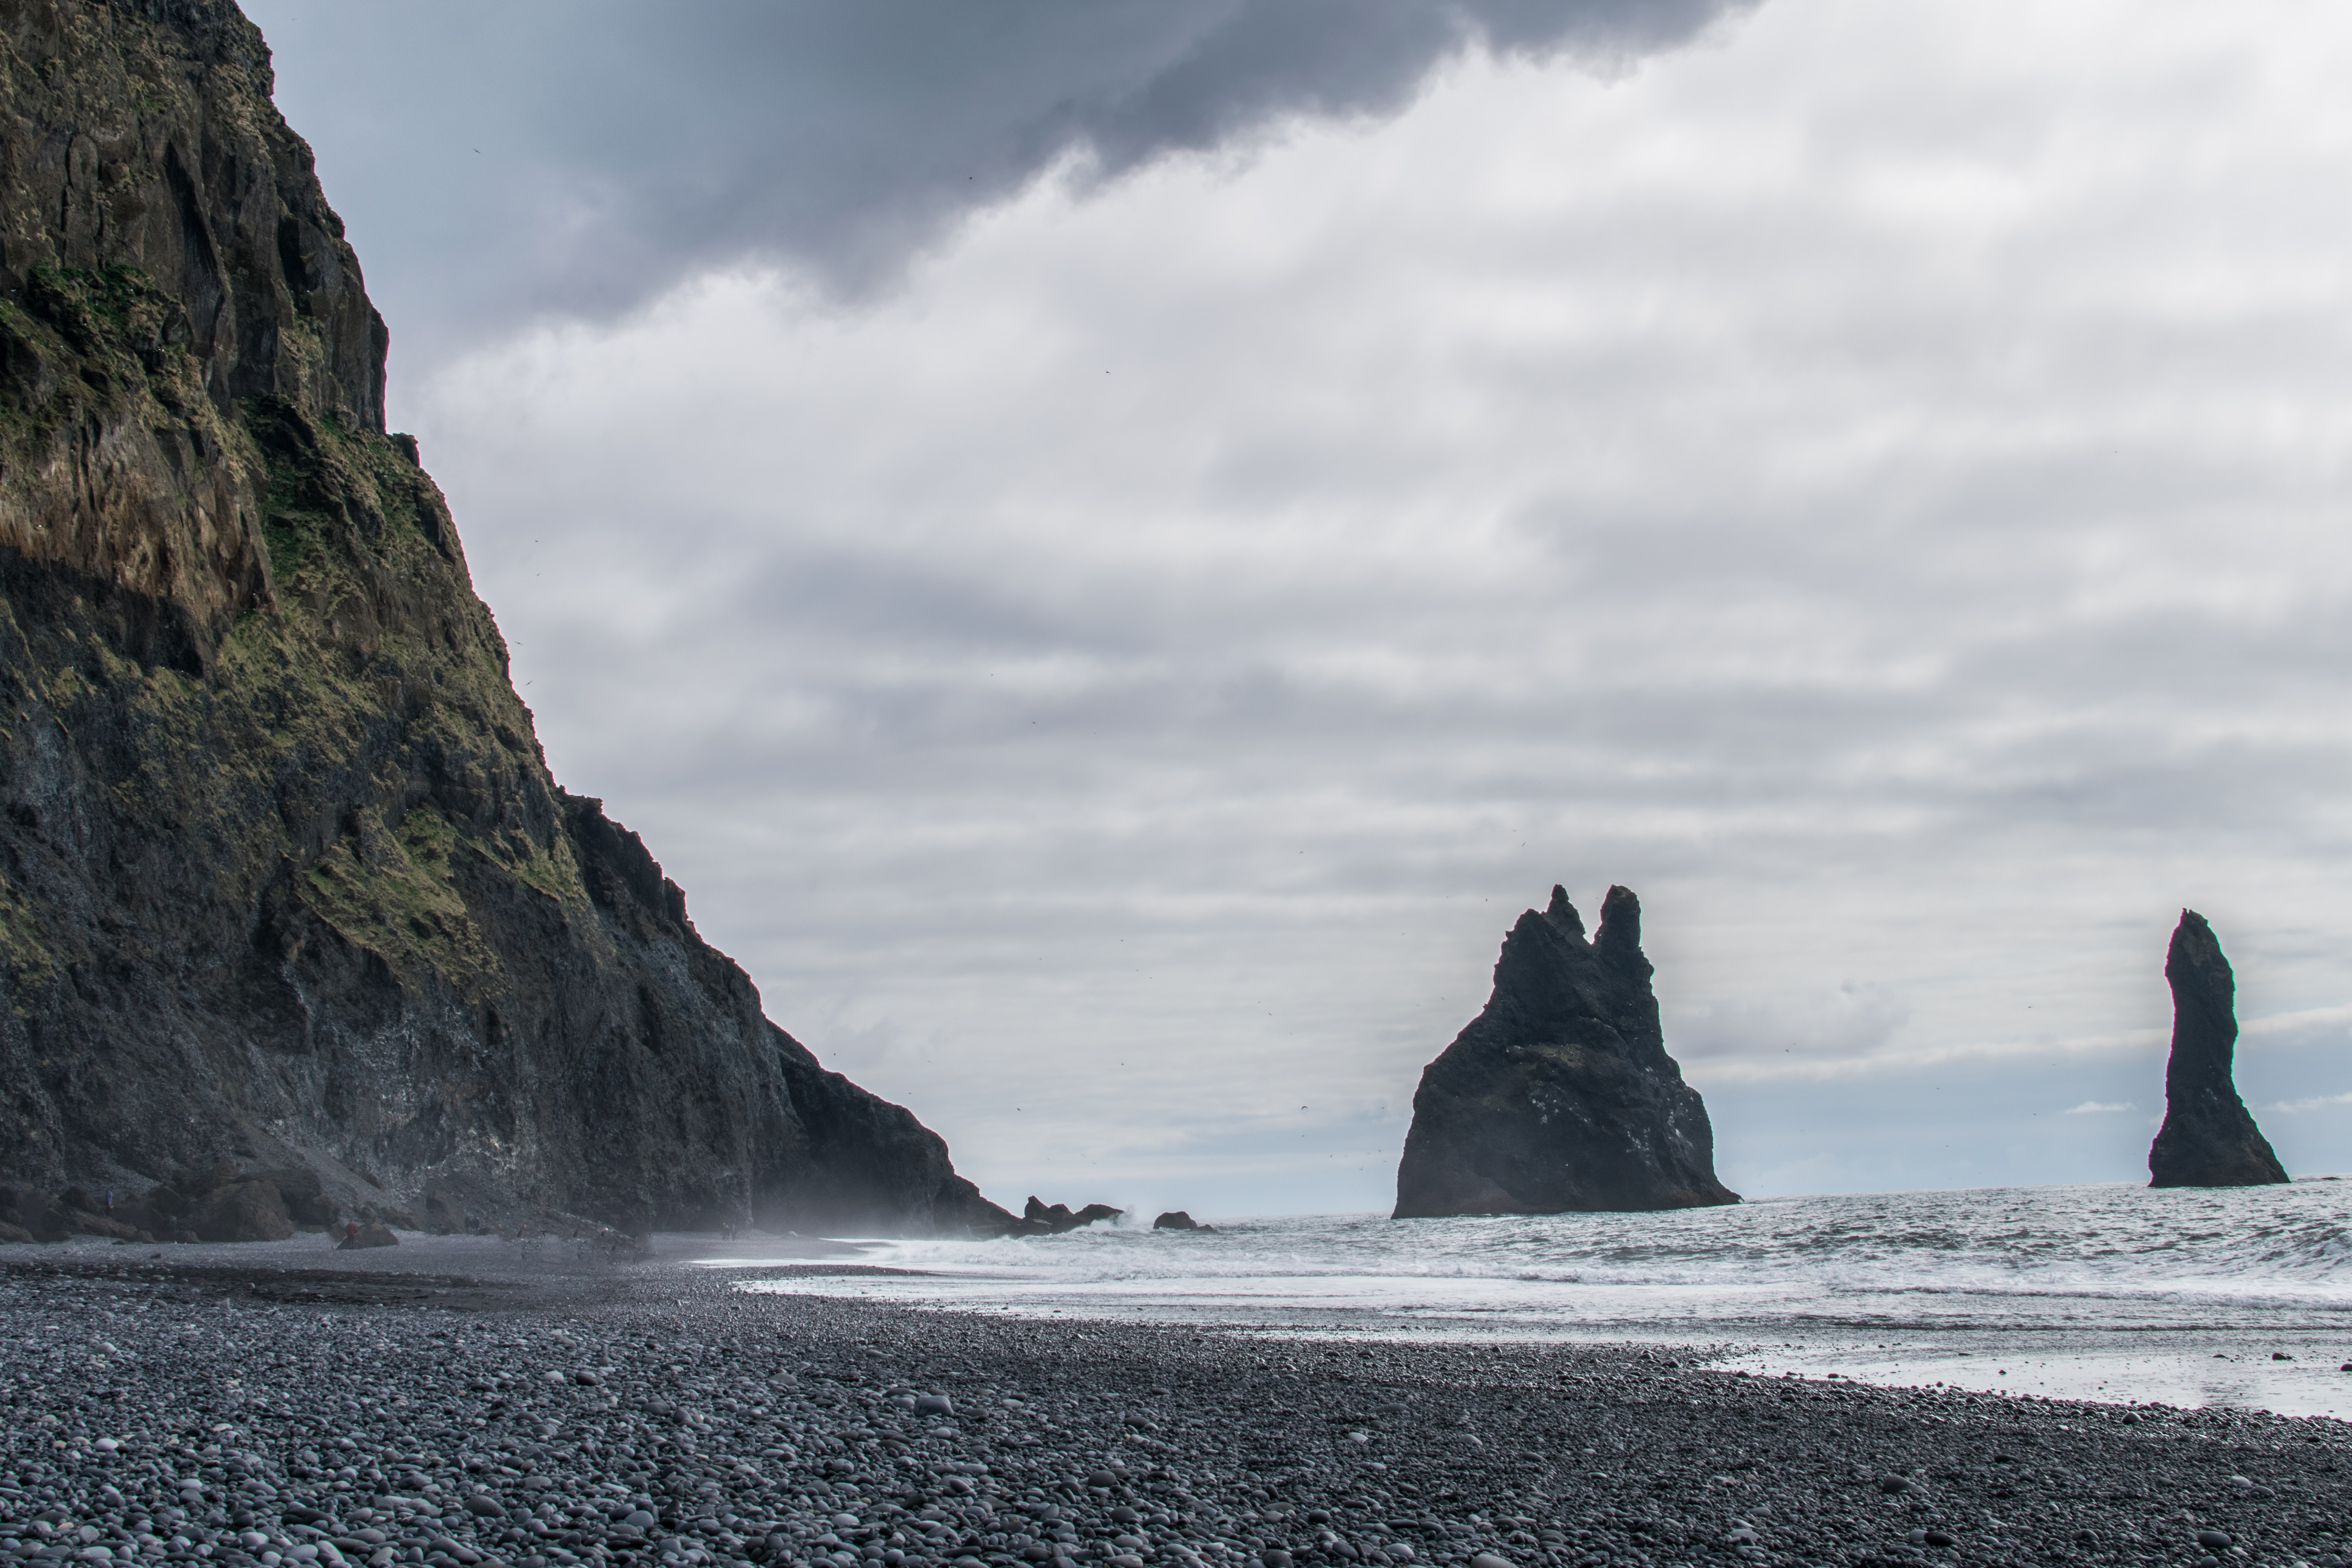 Rock formations by the tall cliff at the Iceland black sand coastline